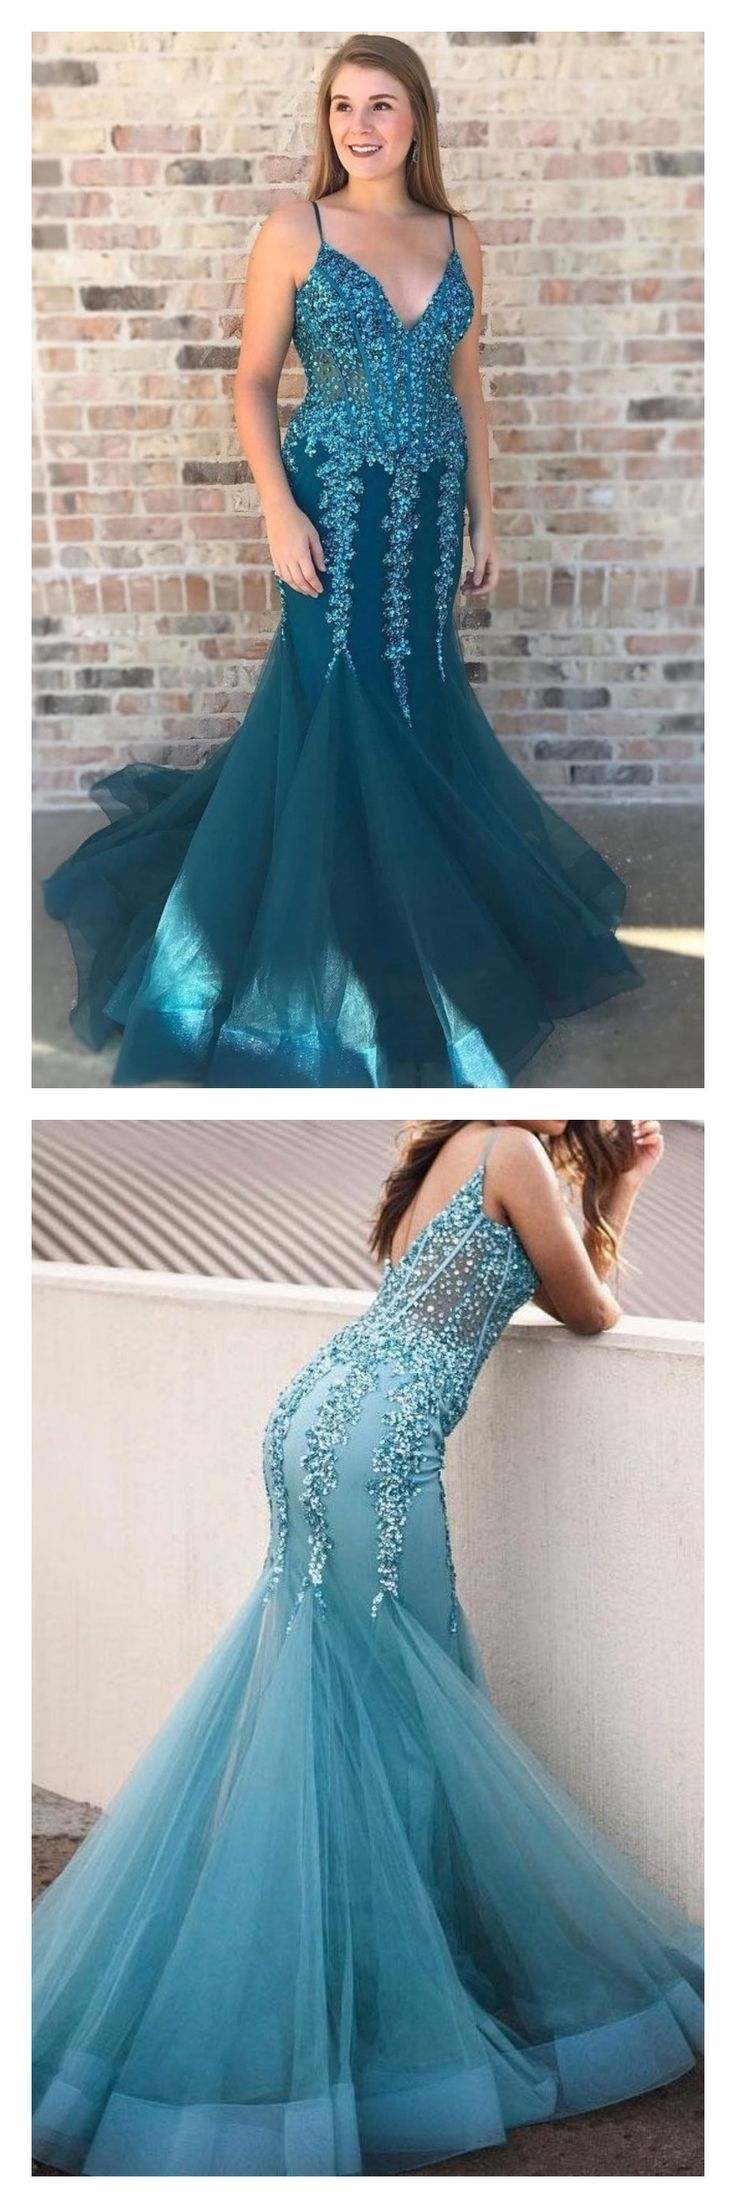 best dress images on pinterest homecoming dresses anos